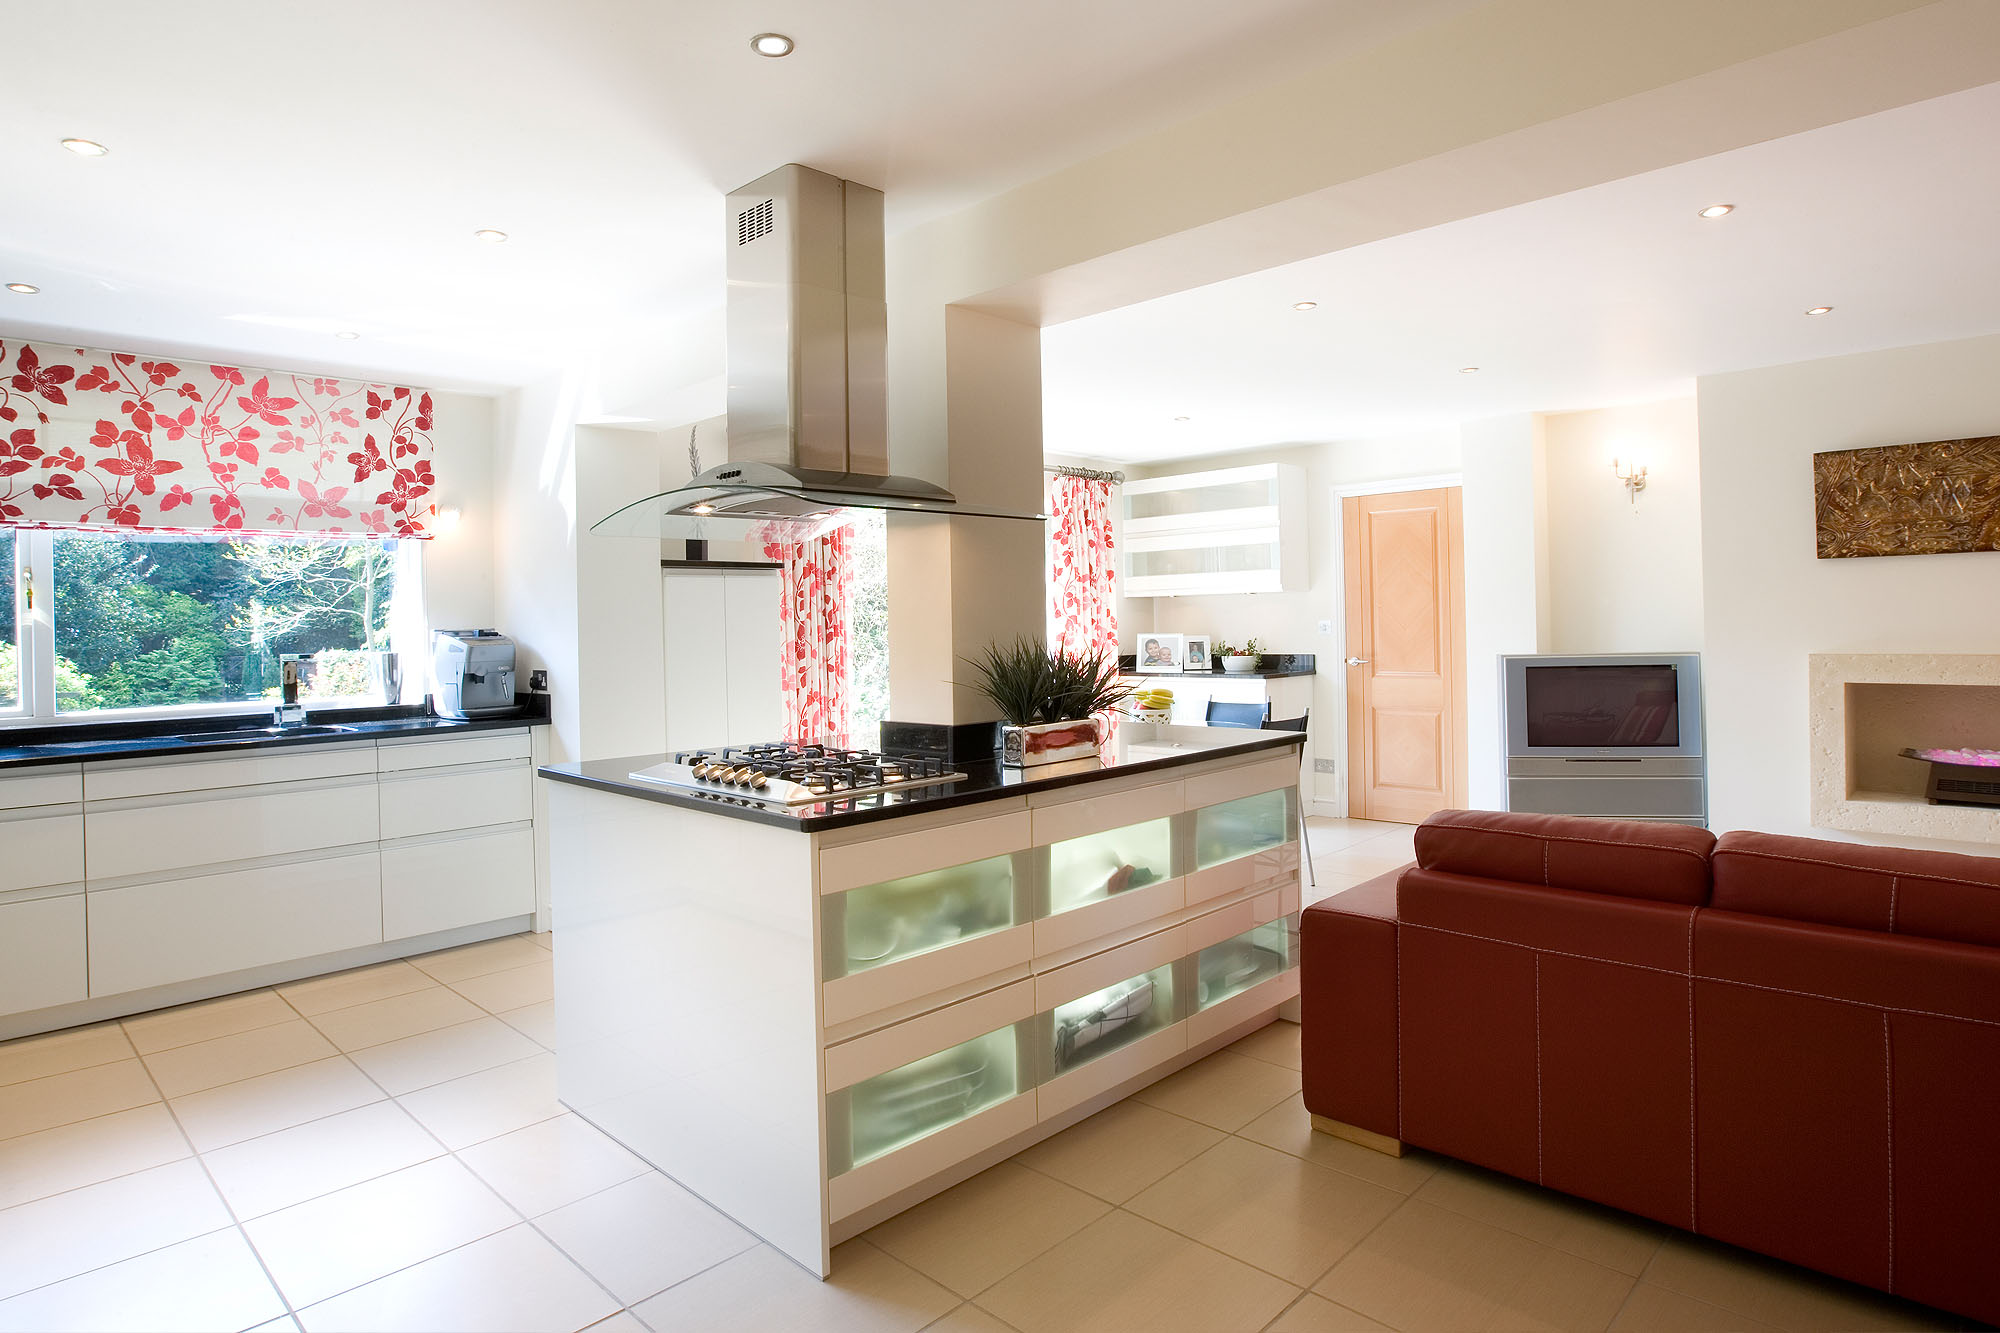 Living Kitchen with red leather sofa and red and white curtains and Roman blinds.